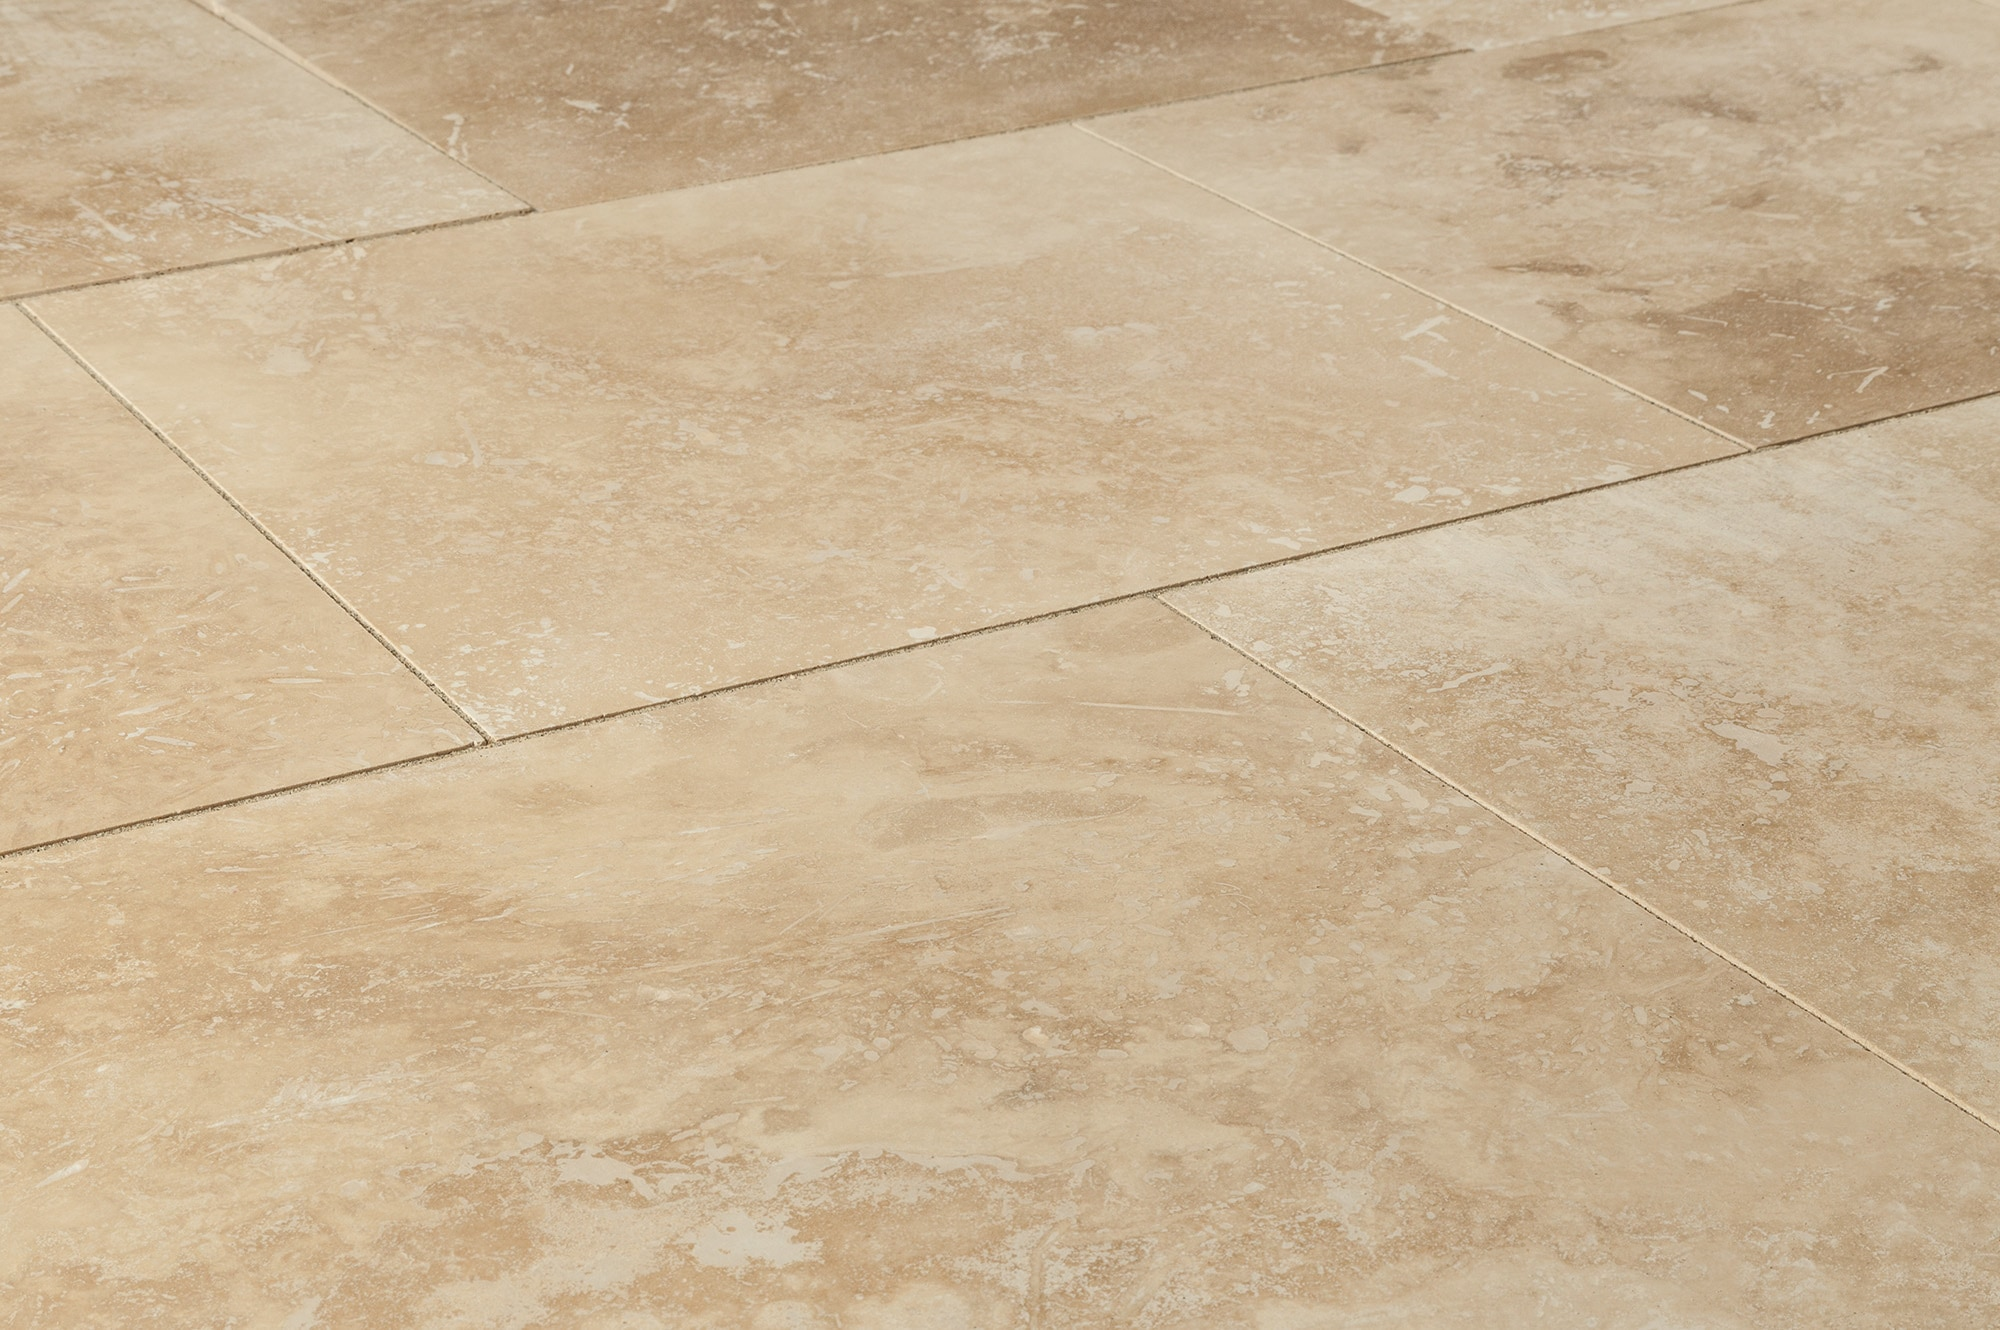 Kesir Travertine Tiles Honed And Filled Oasis Beige Premium 18 X18 X1 2